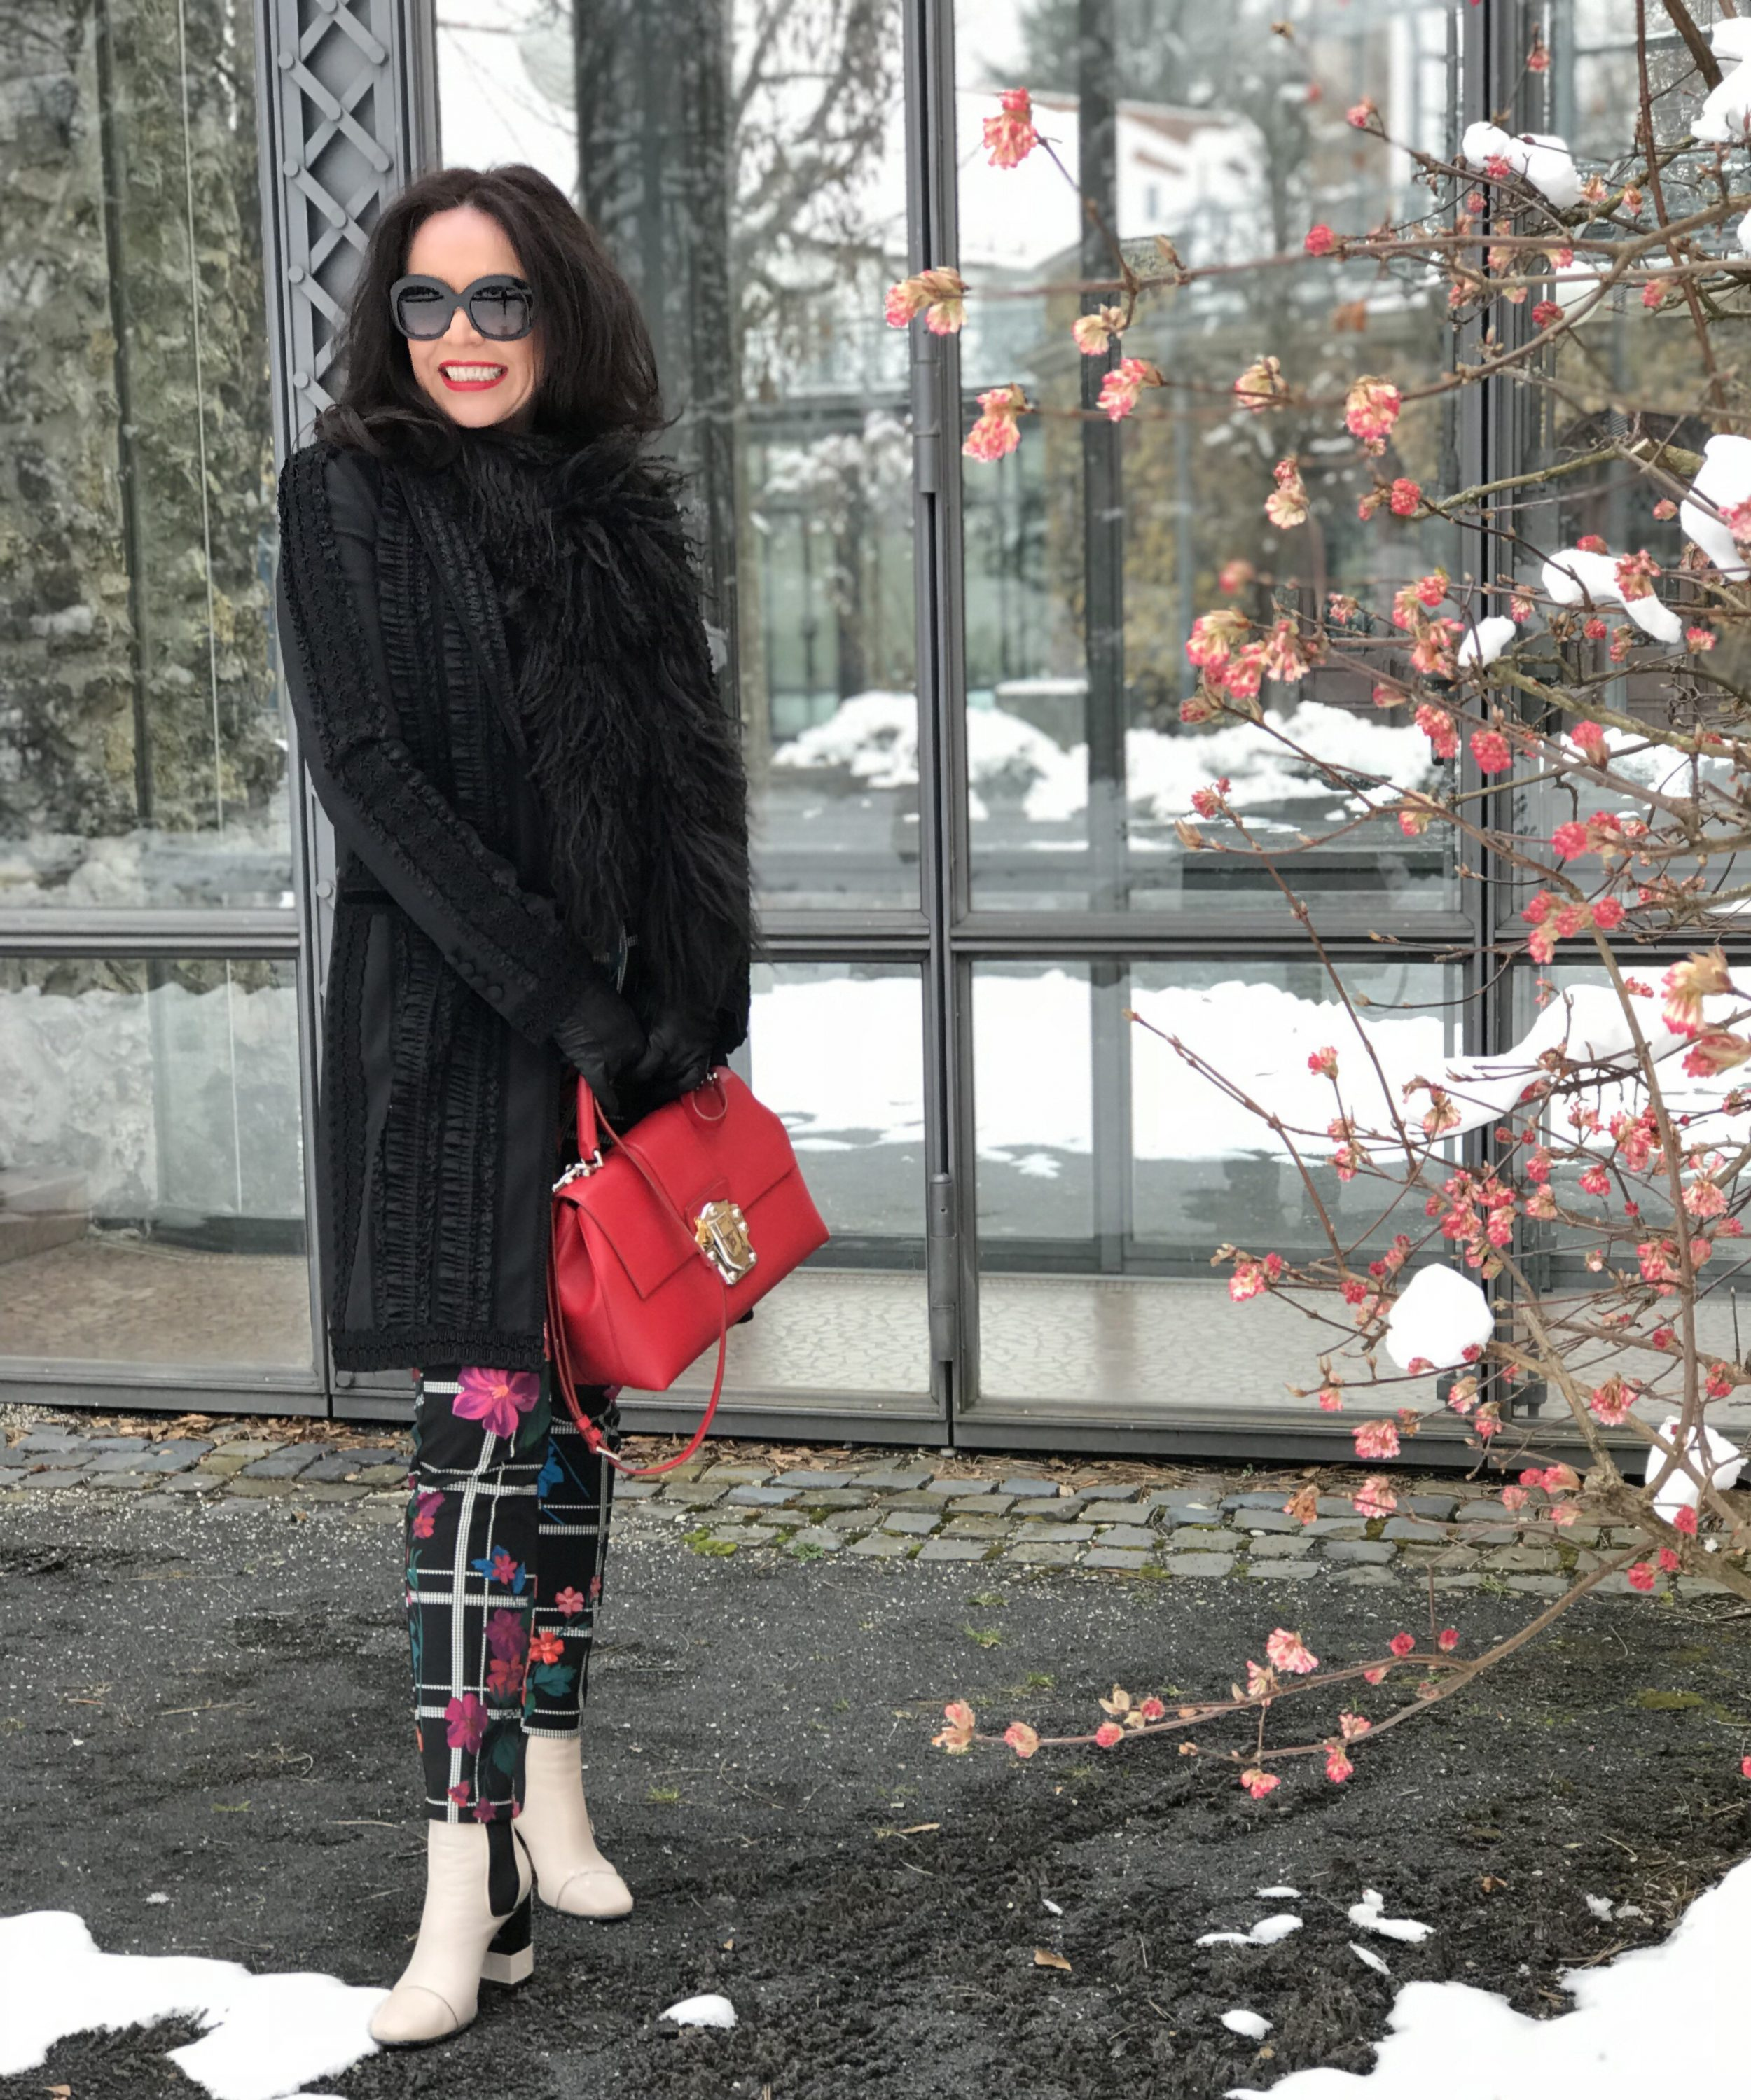 Biancoghiacco pants, Italian fashion, Dolce Gabbana, Giorgio Armani, Lea-Gu shoes, ageless style, Fashionblog Augsburg, Fashion for Ladies, Italia Moda, Damenmode, Bekleidung, Style for Woman, Streetchic, streetwear, streetfashion in winter, winteroutfit, fancy style